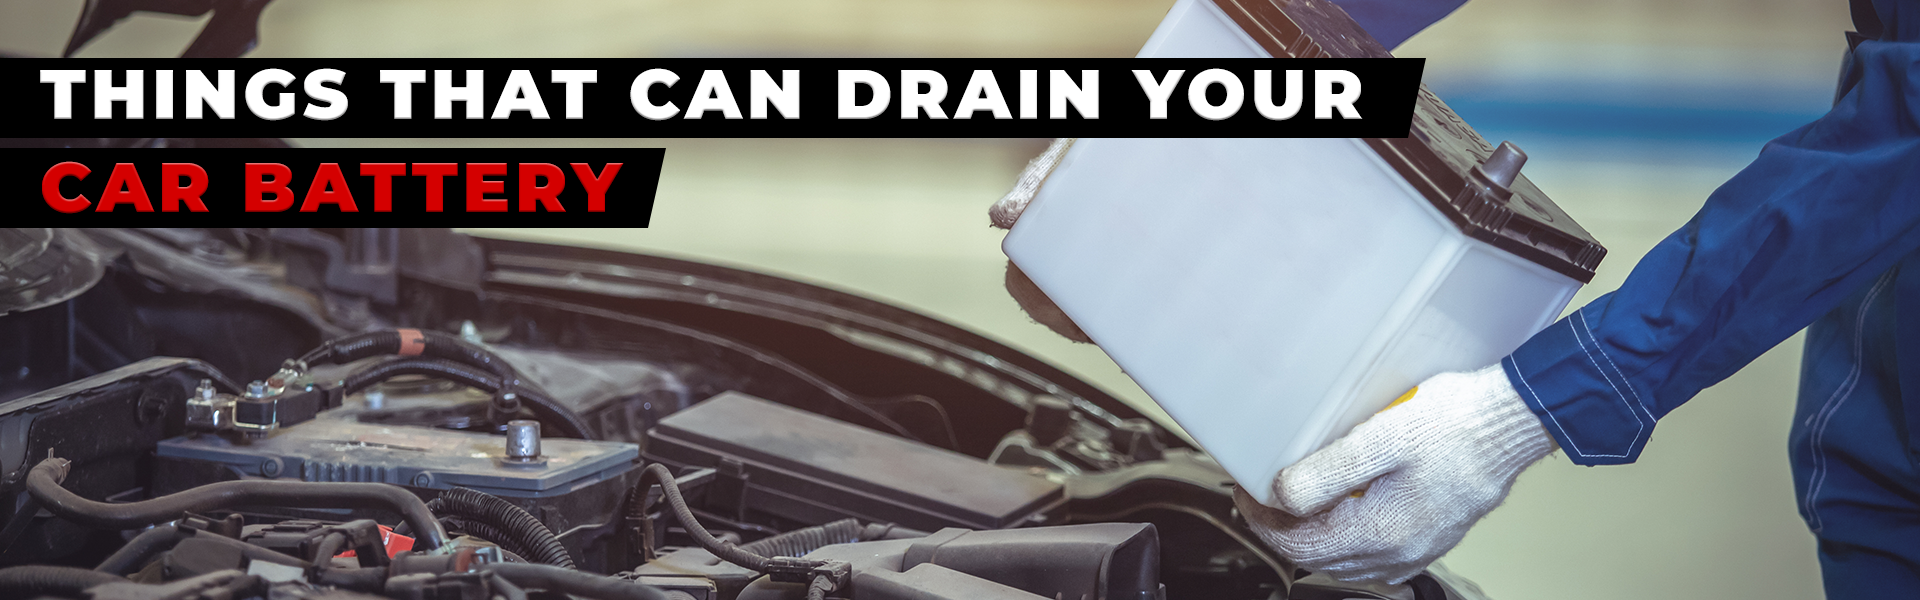 drain your car battery